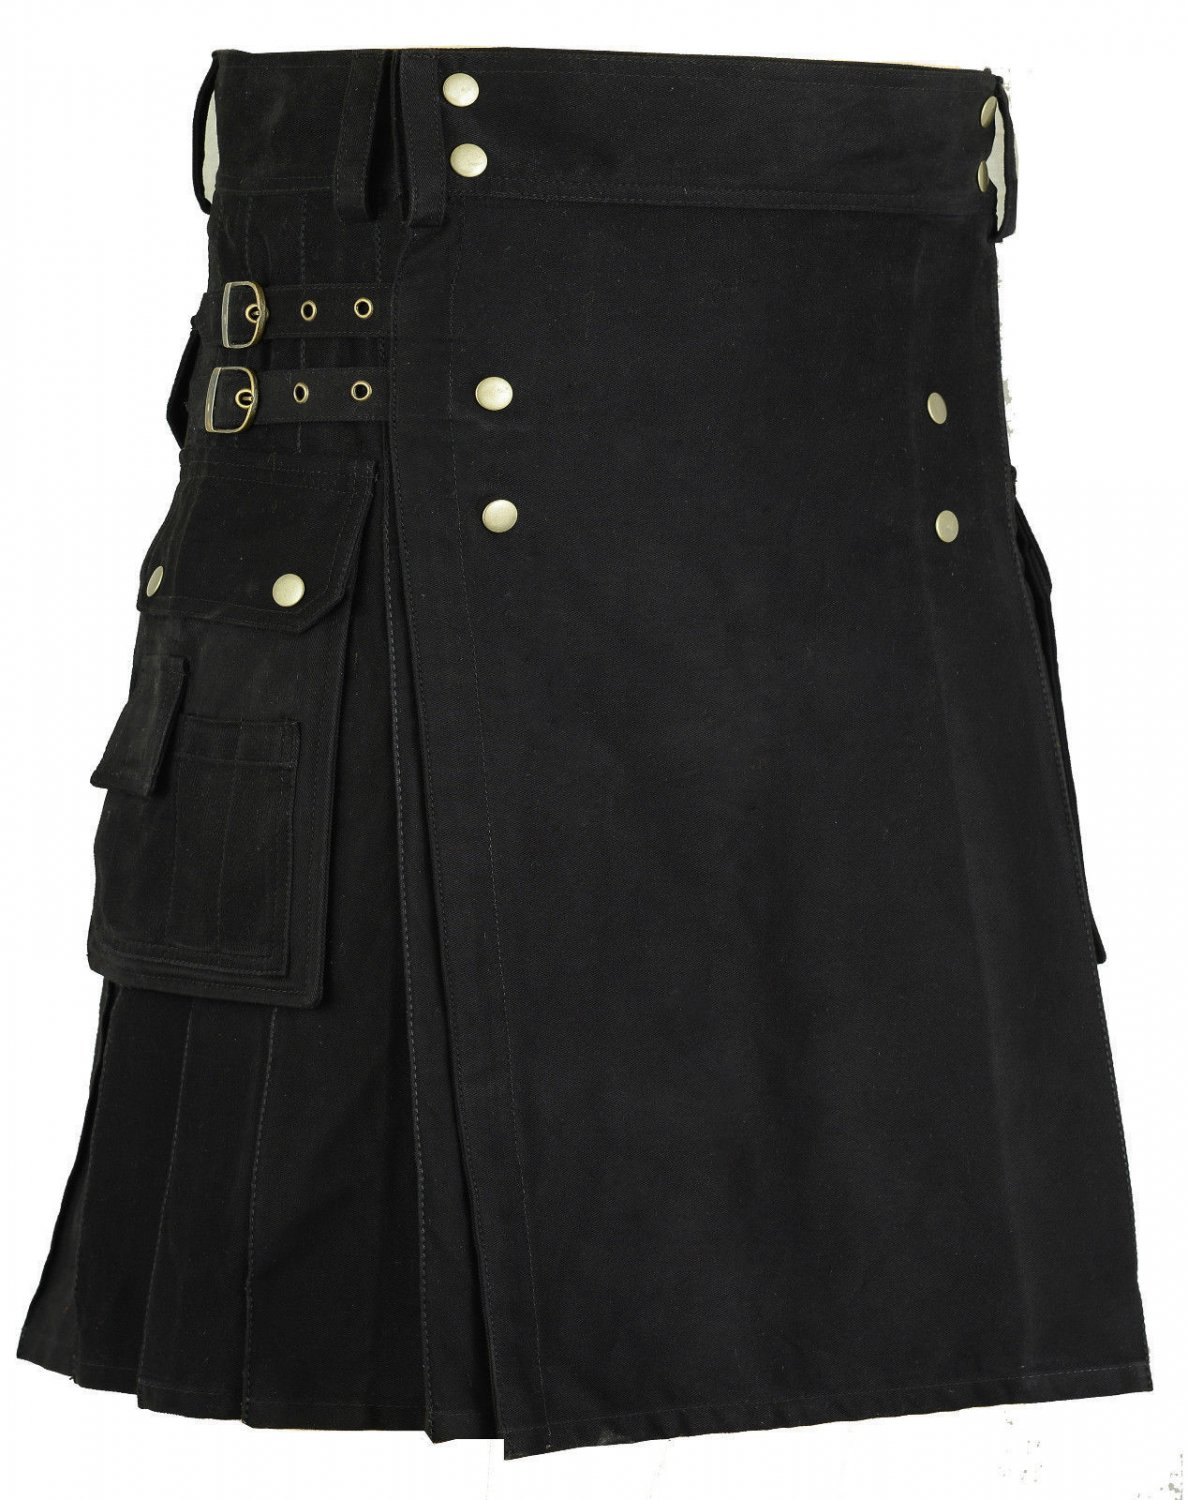 Size 52 New Scottish Cotton Kilt Deluxe Goth Outdoor Utility Kilts Highland Skirt